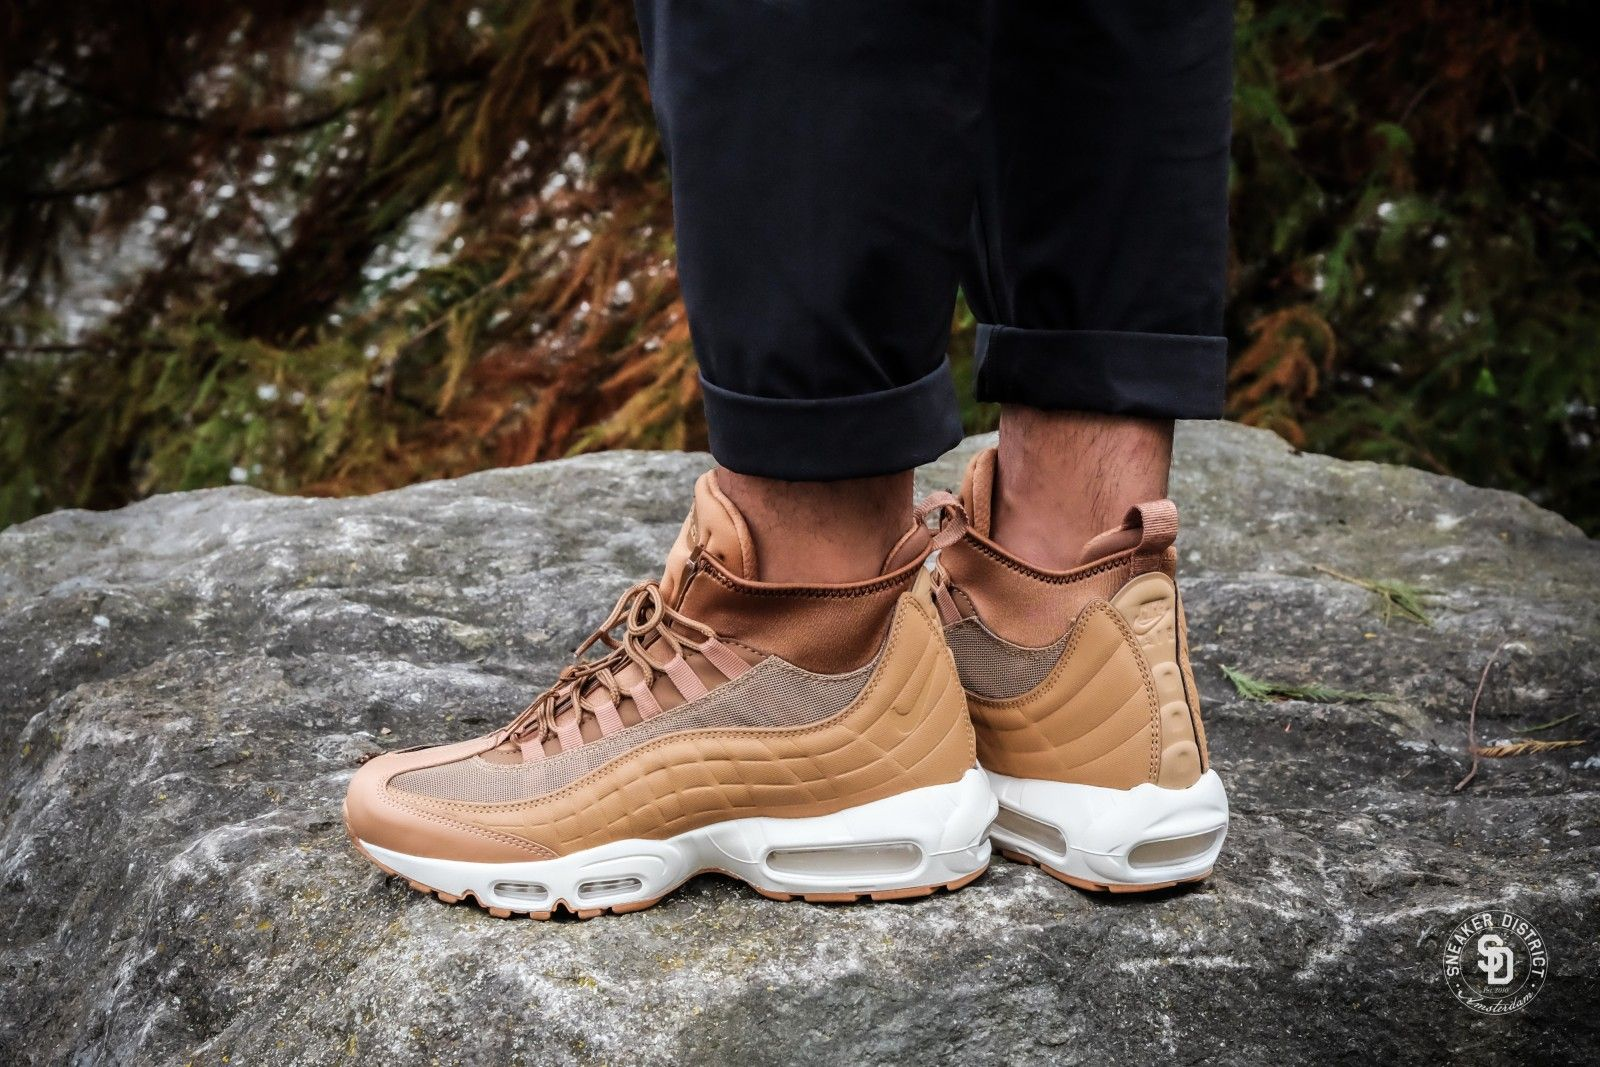 new styles a8c61 12754 Nike Air Max 95 Sneakerboot Flax Ale Brown Shoes ,The design that sticks to  the foot, dress more comfortable!